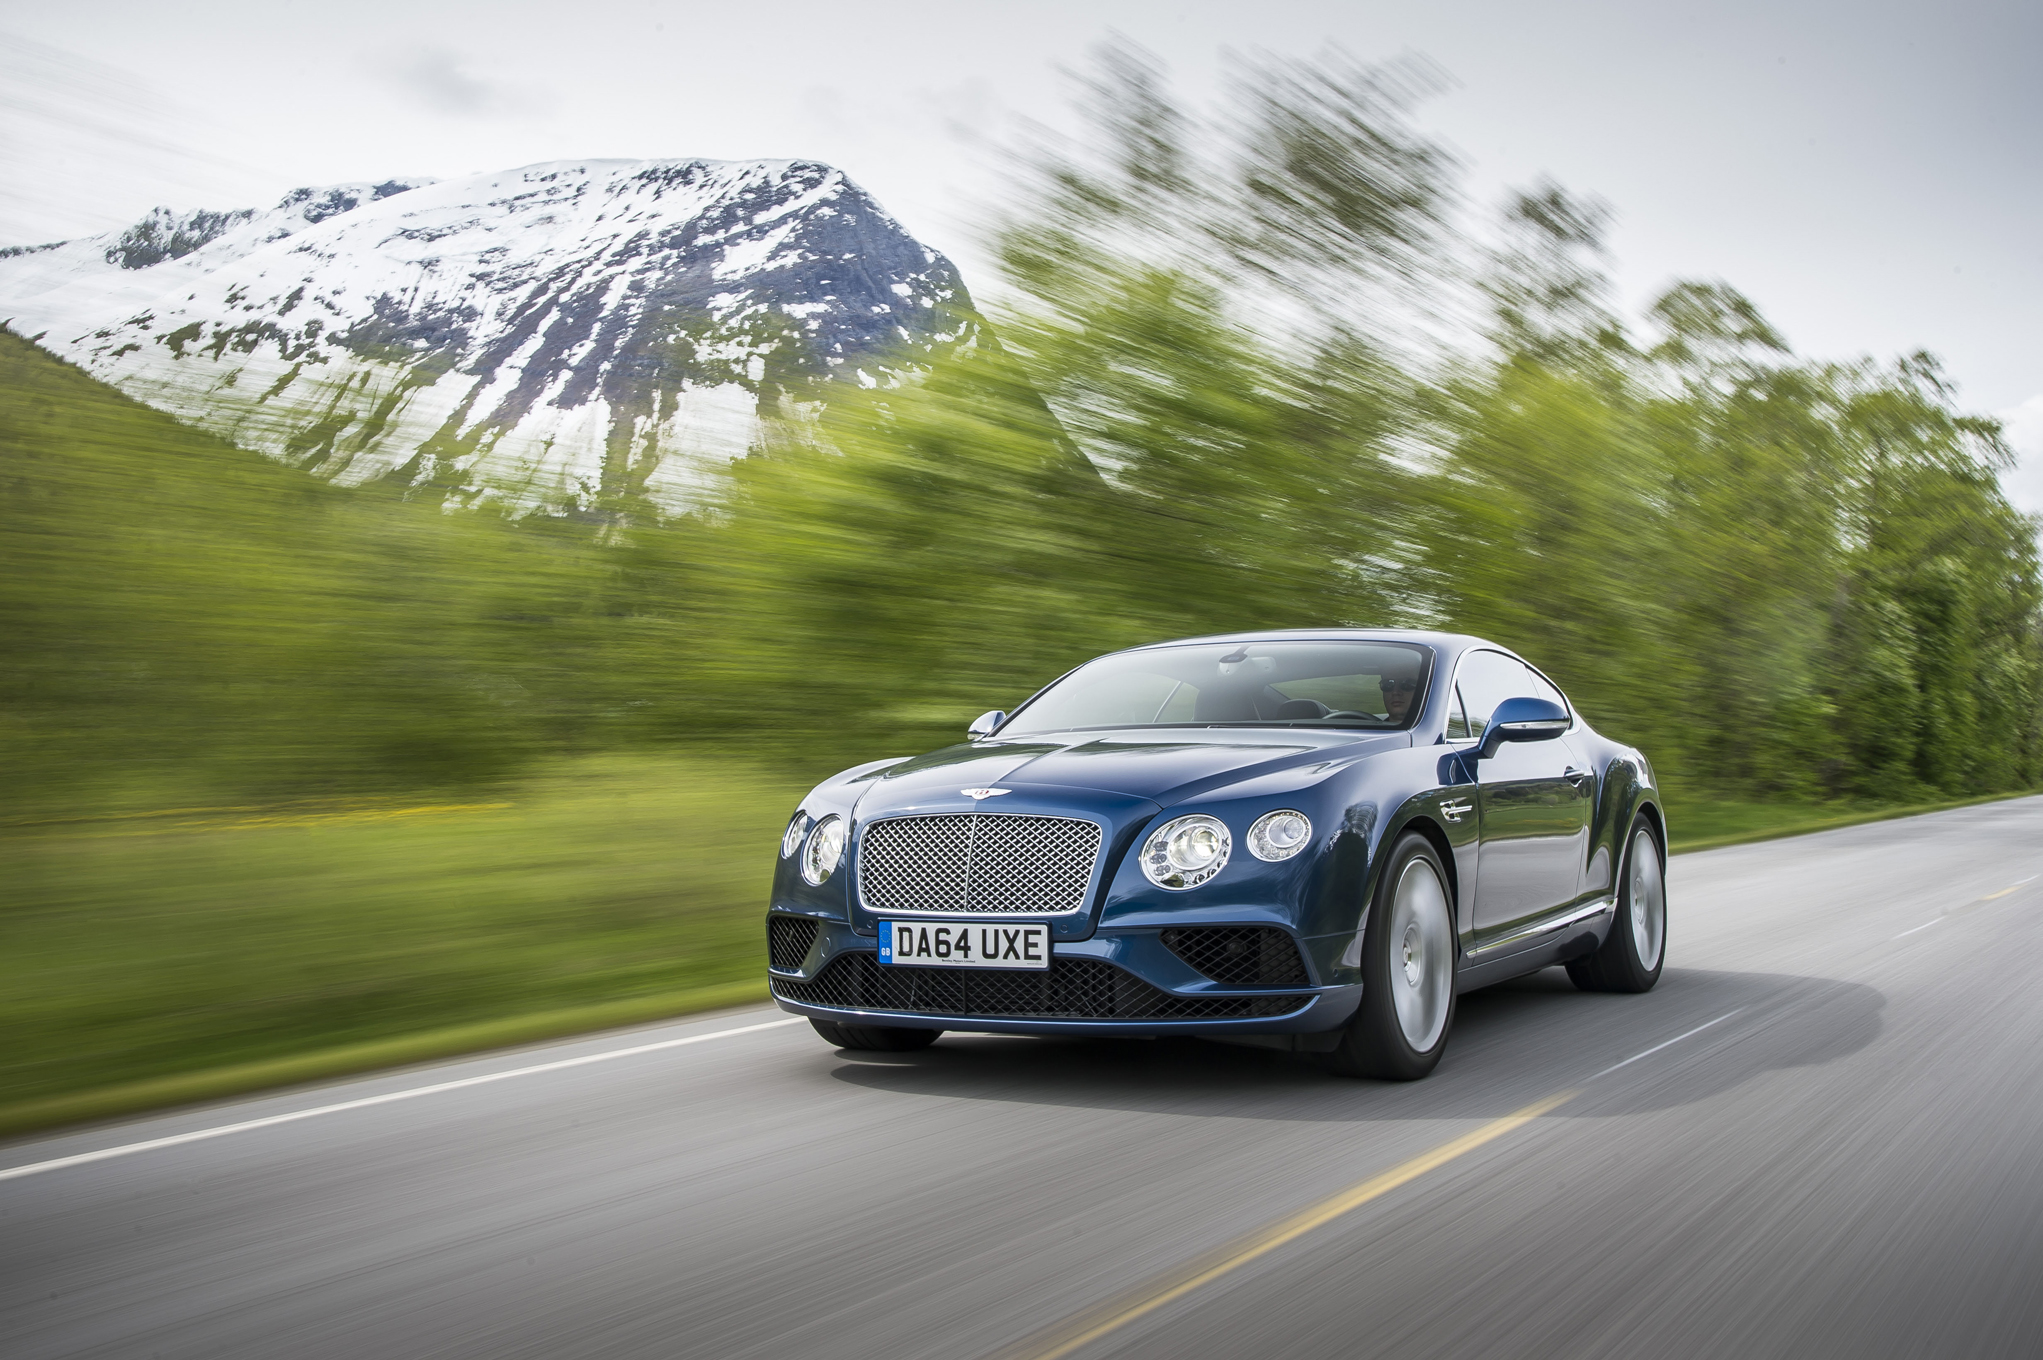 2016 Bentley Continental Gt V8 Coupe (View 17 of 27)